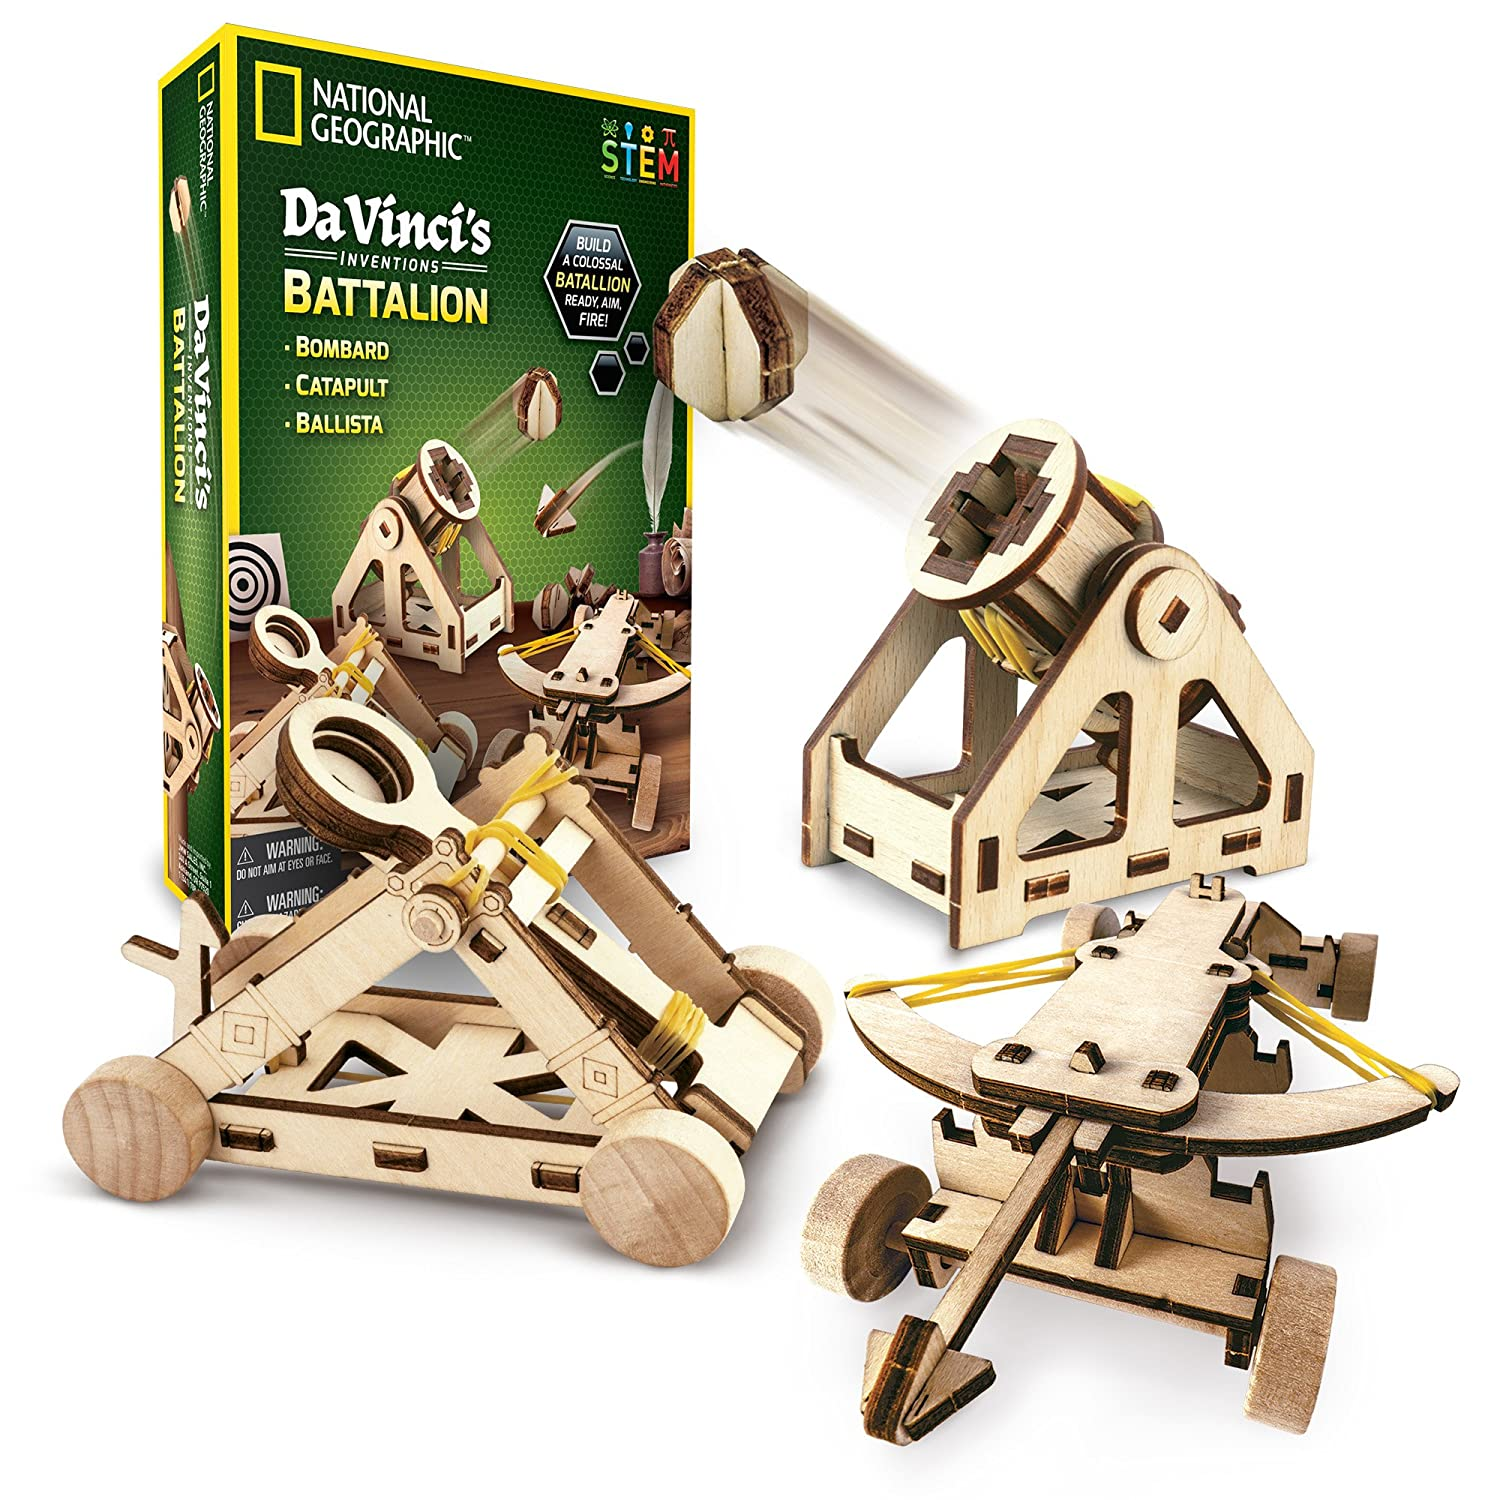 NATIONAL GEOGRAPHIC - Da Vinci's DIY Science & Engineering Construction Kit – Build Three Functioning Wooden Models: Catapult, Bombard & Ballista